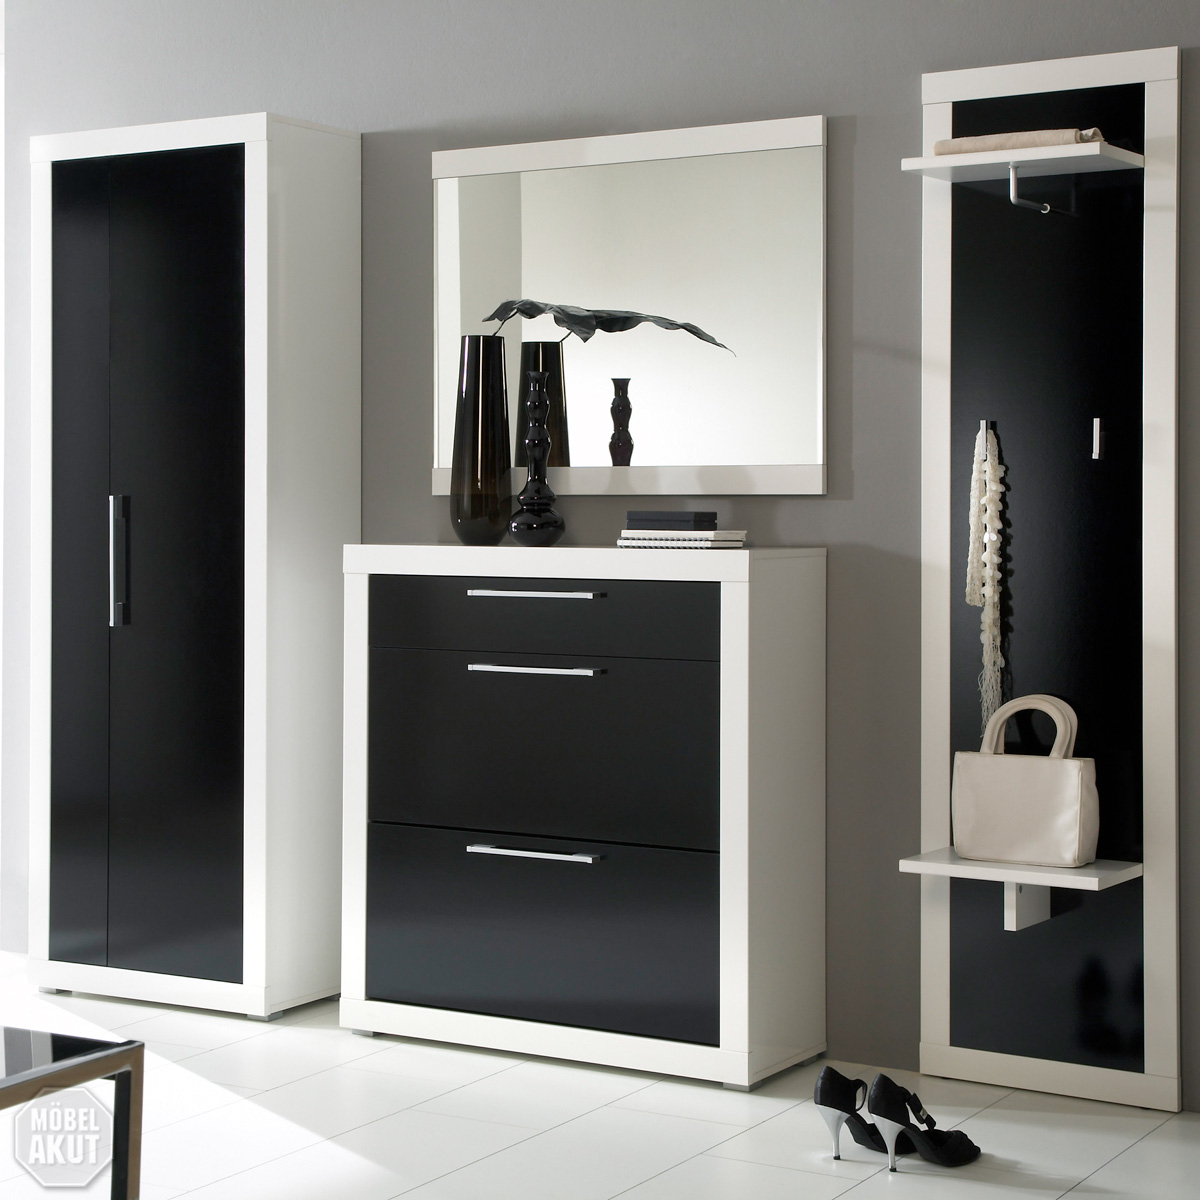 garderoben set beco in wei schwarz hochglanz. Black Bedroom Furniture Sets. Home Design Ideas